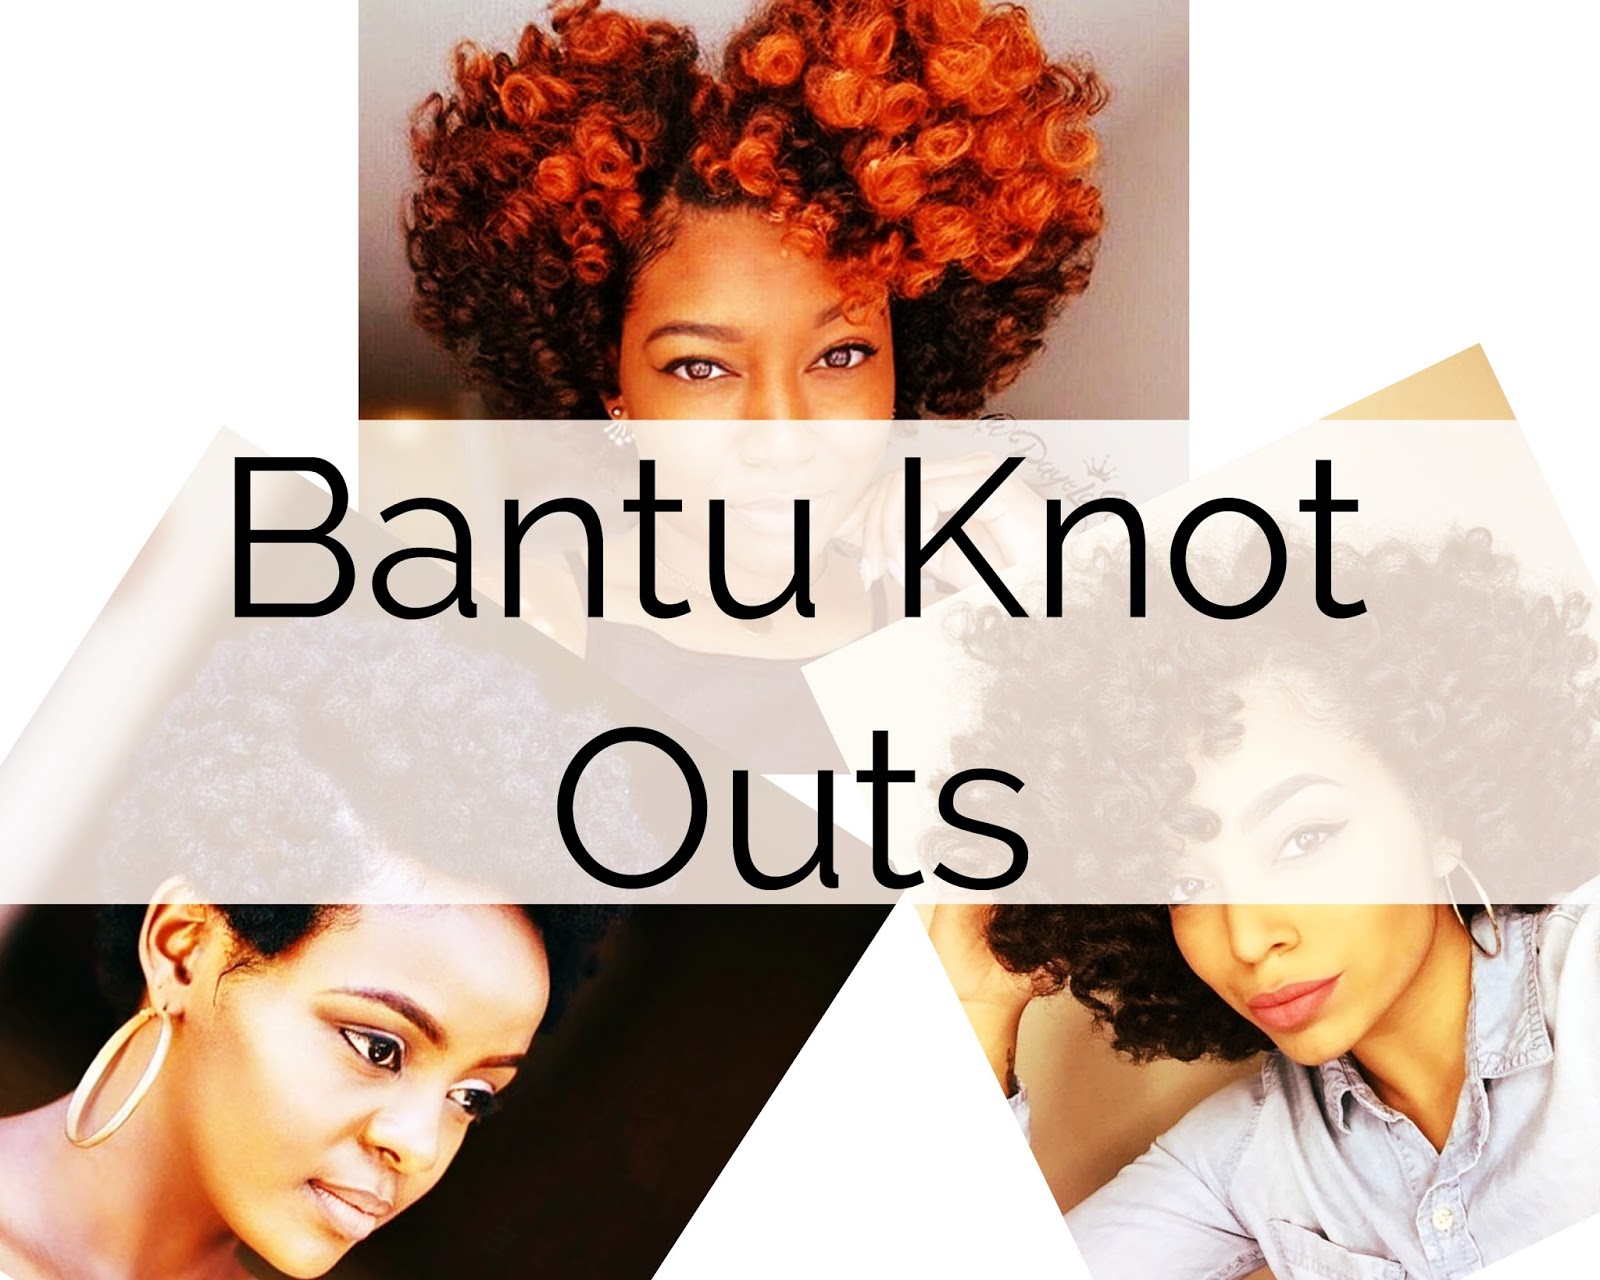 Check out the best transitioning hairstyles for natural hair newbies!